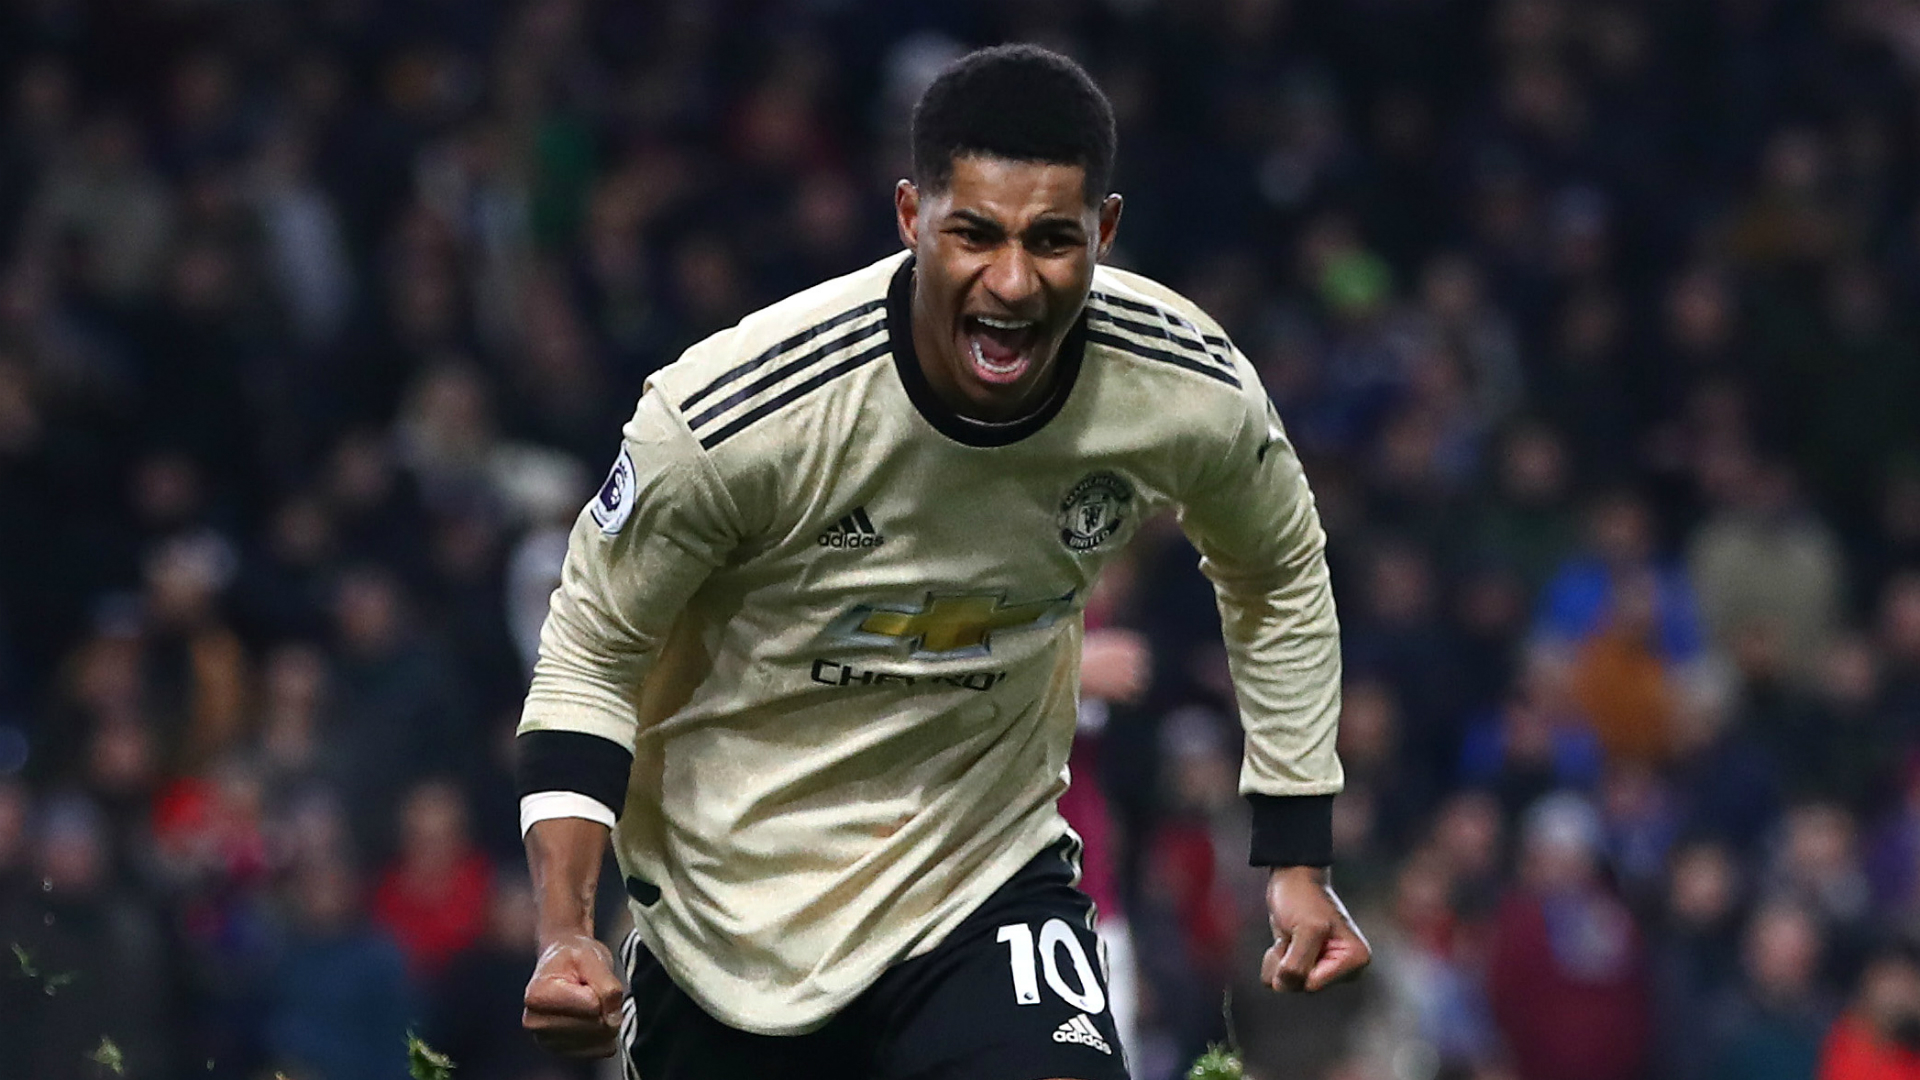 Rashford is most talented player I've played with – Man Utd captain Maguire